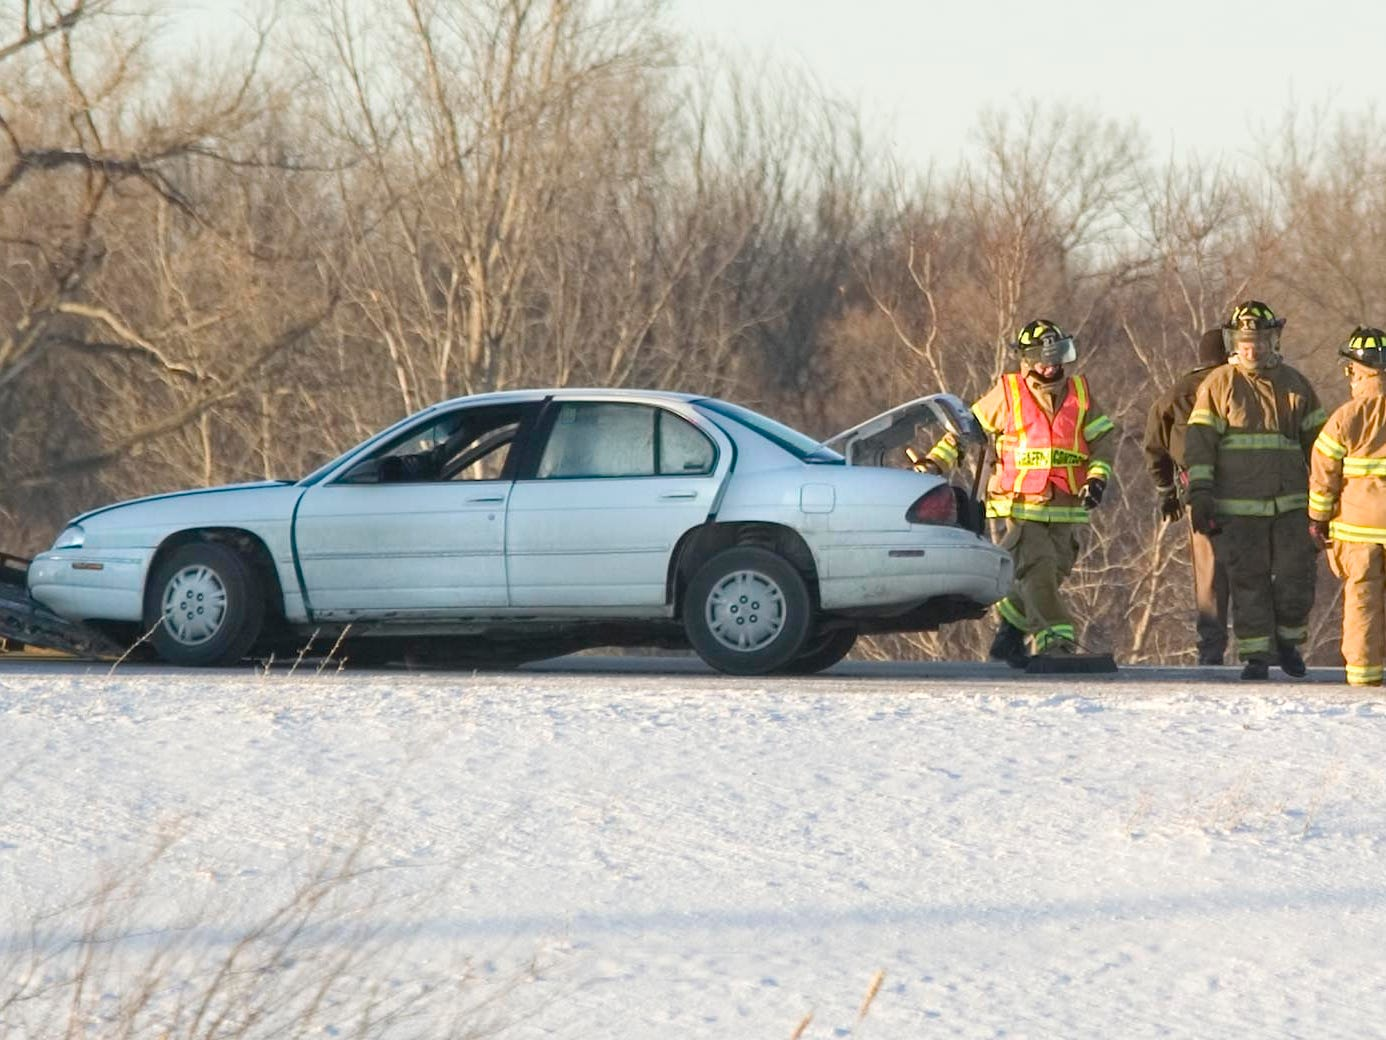 Firefighters gather around a damaged car along state Highway 23 at County U Friday January 16, 2009.  Officials closed a section of state Highway 23 to take care of the crash